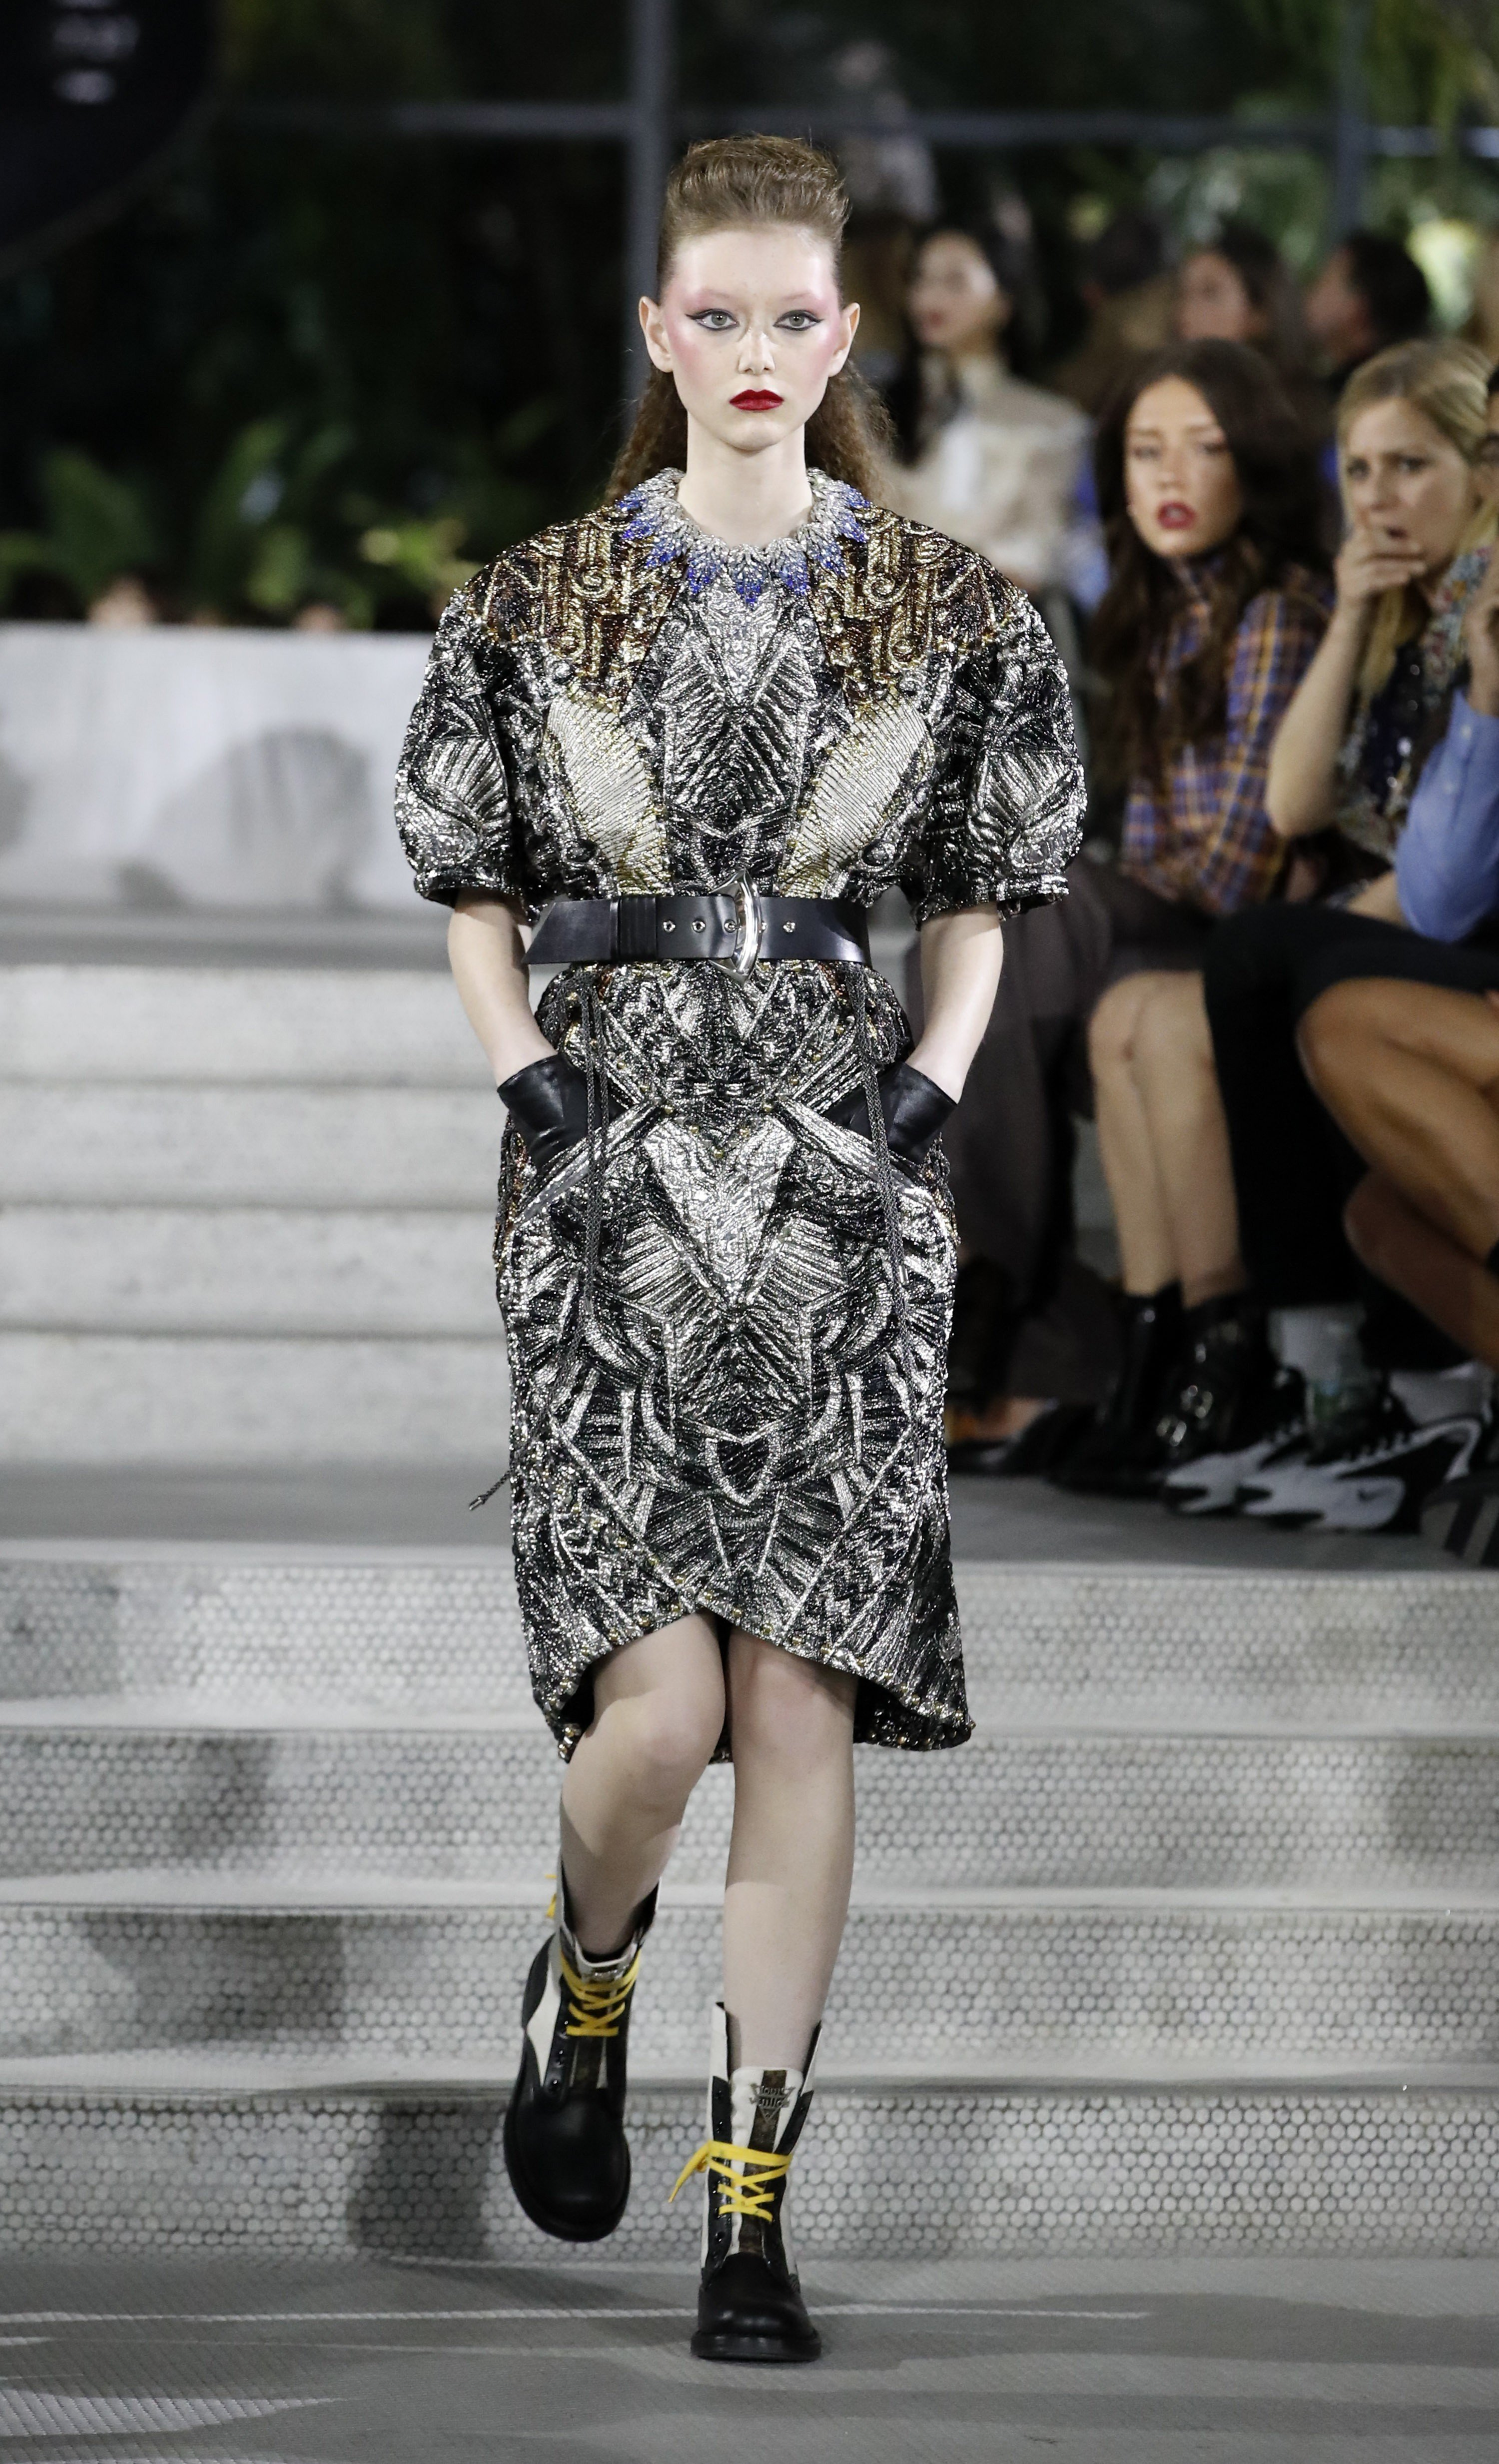 Jennifer Connelly, Emma Stone and Cate Blanchett pose at JFK for Louis Vuitton's cruise show